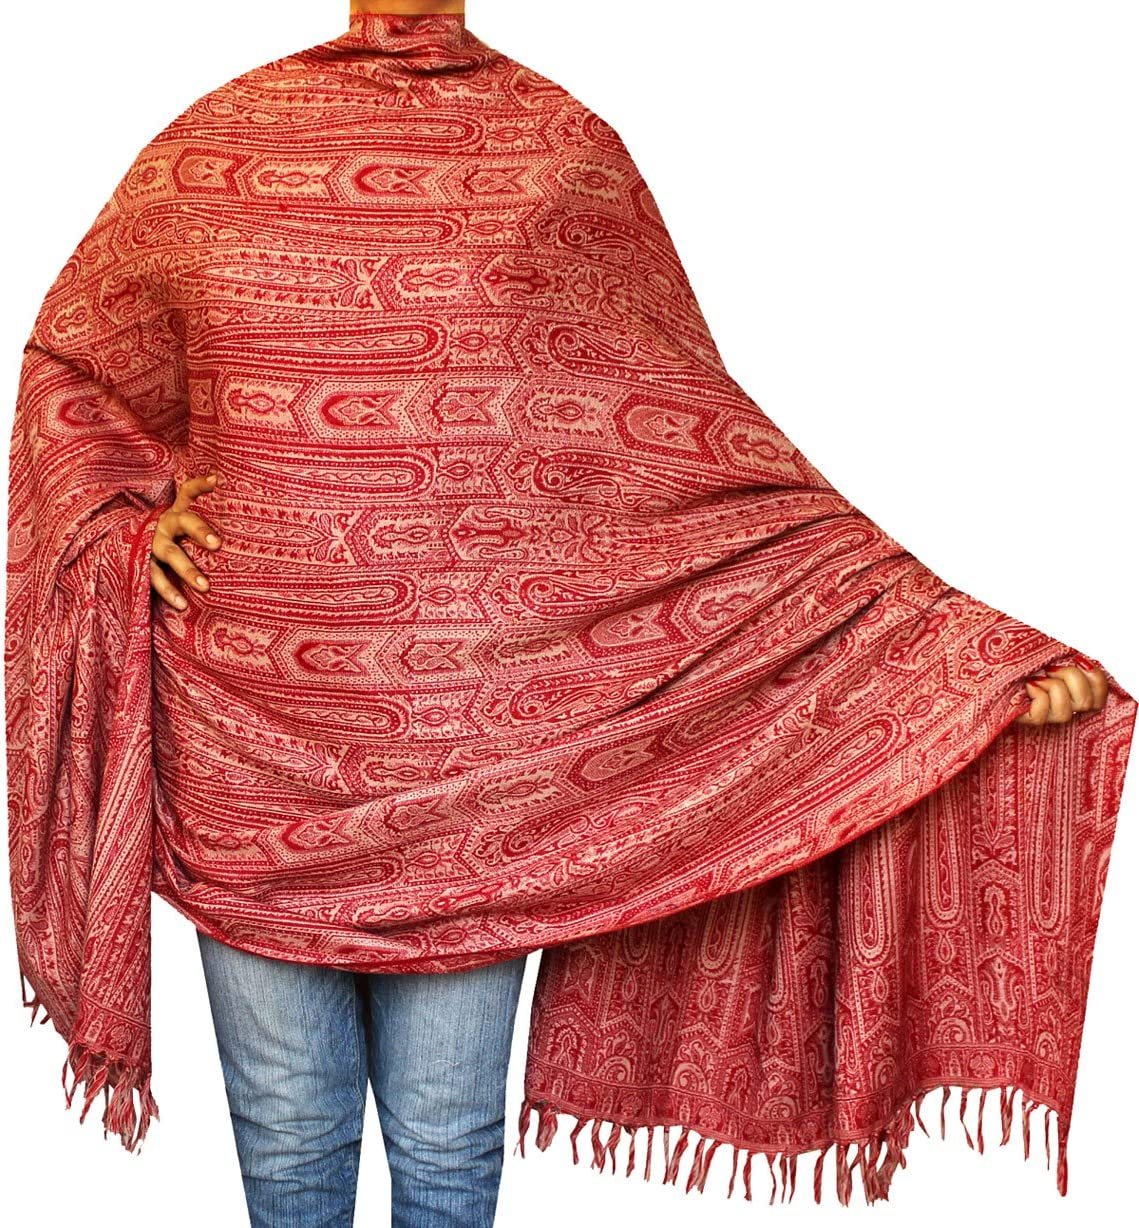 Womens Paisley Wool Shawl Wrap Gift India Clothes 82 x 42 inches